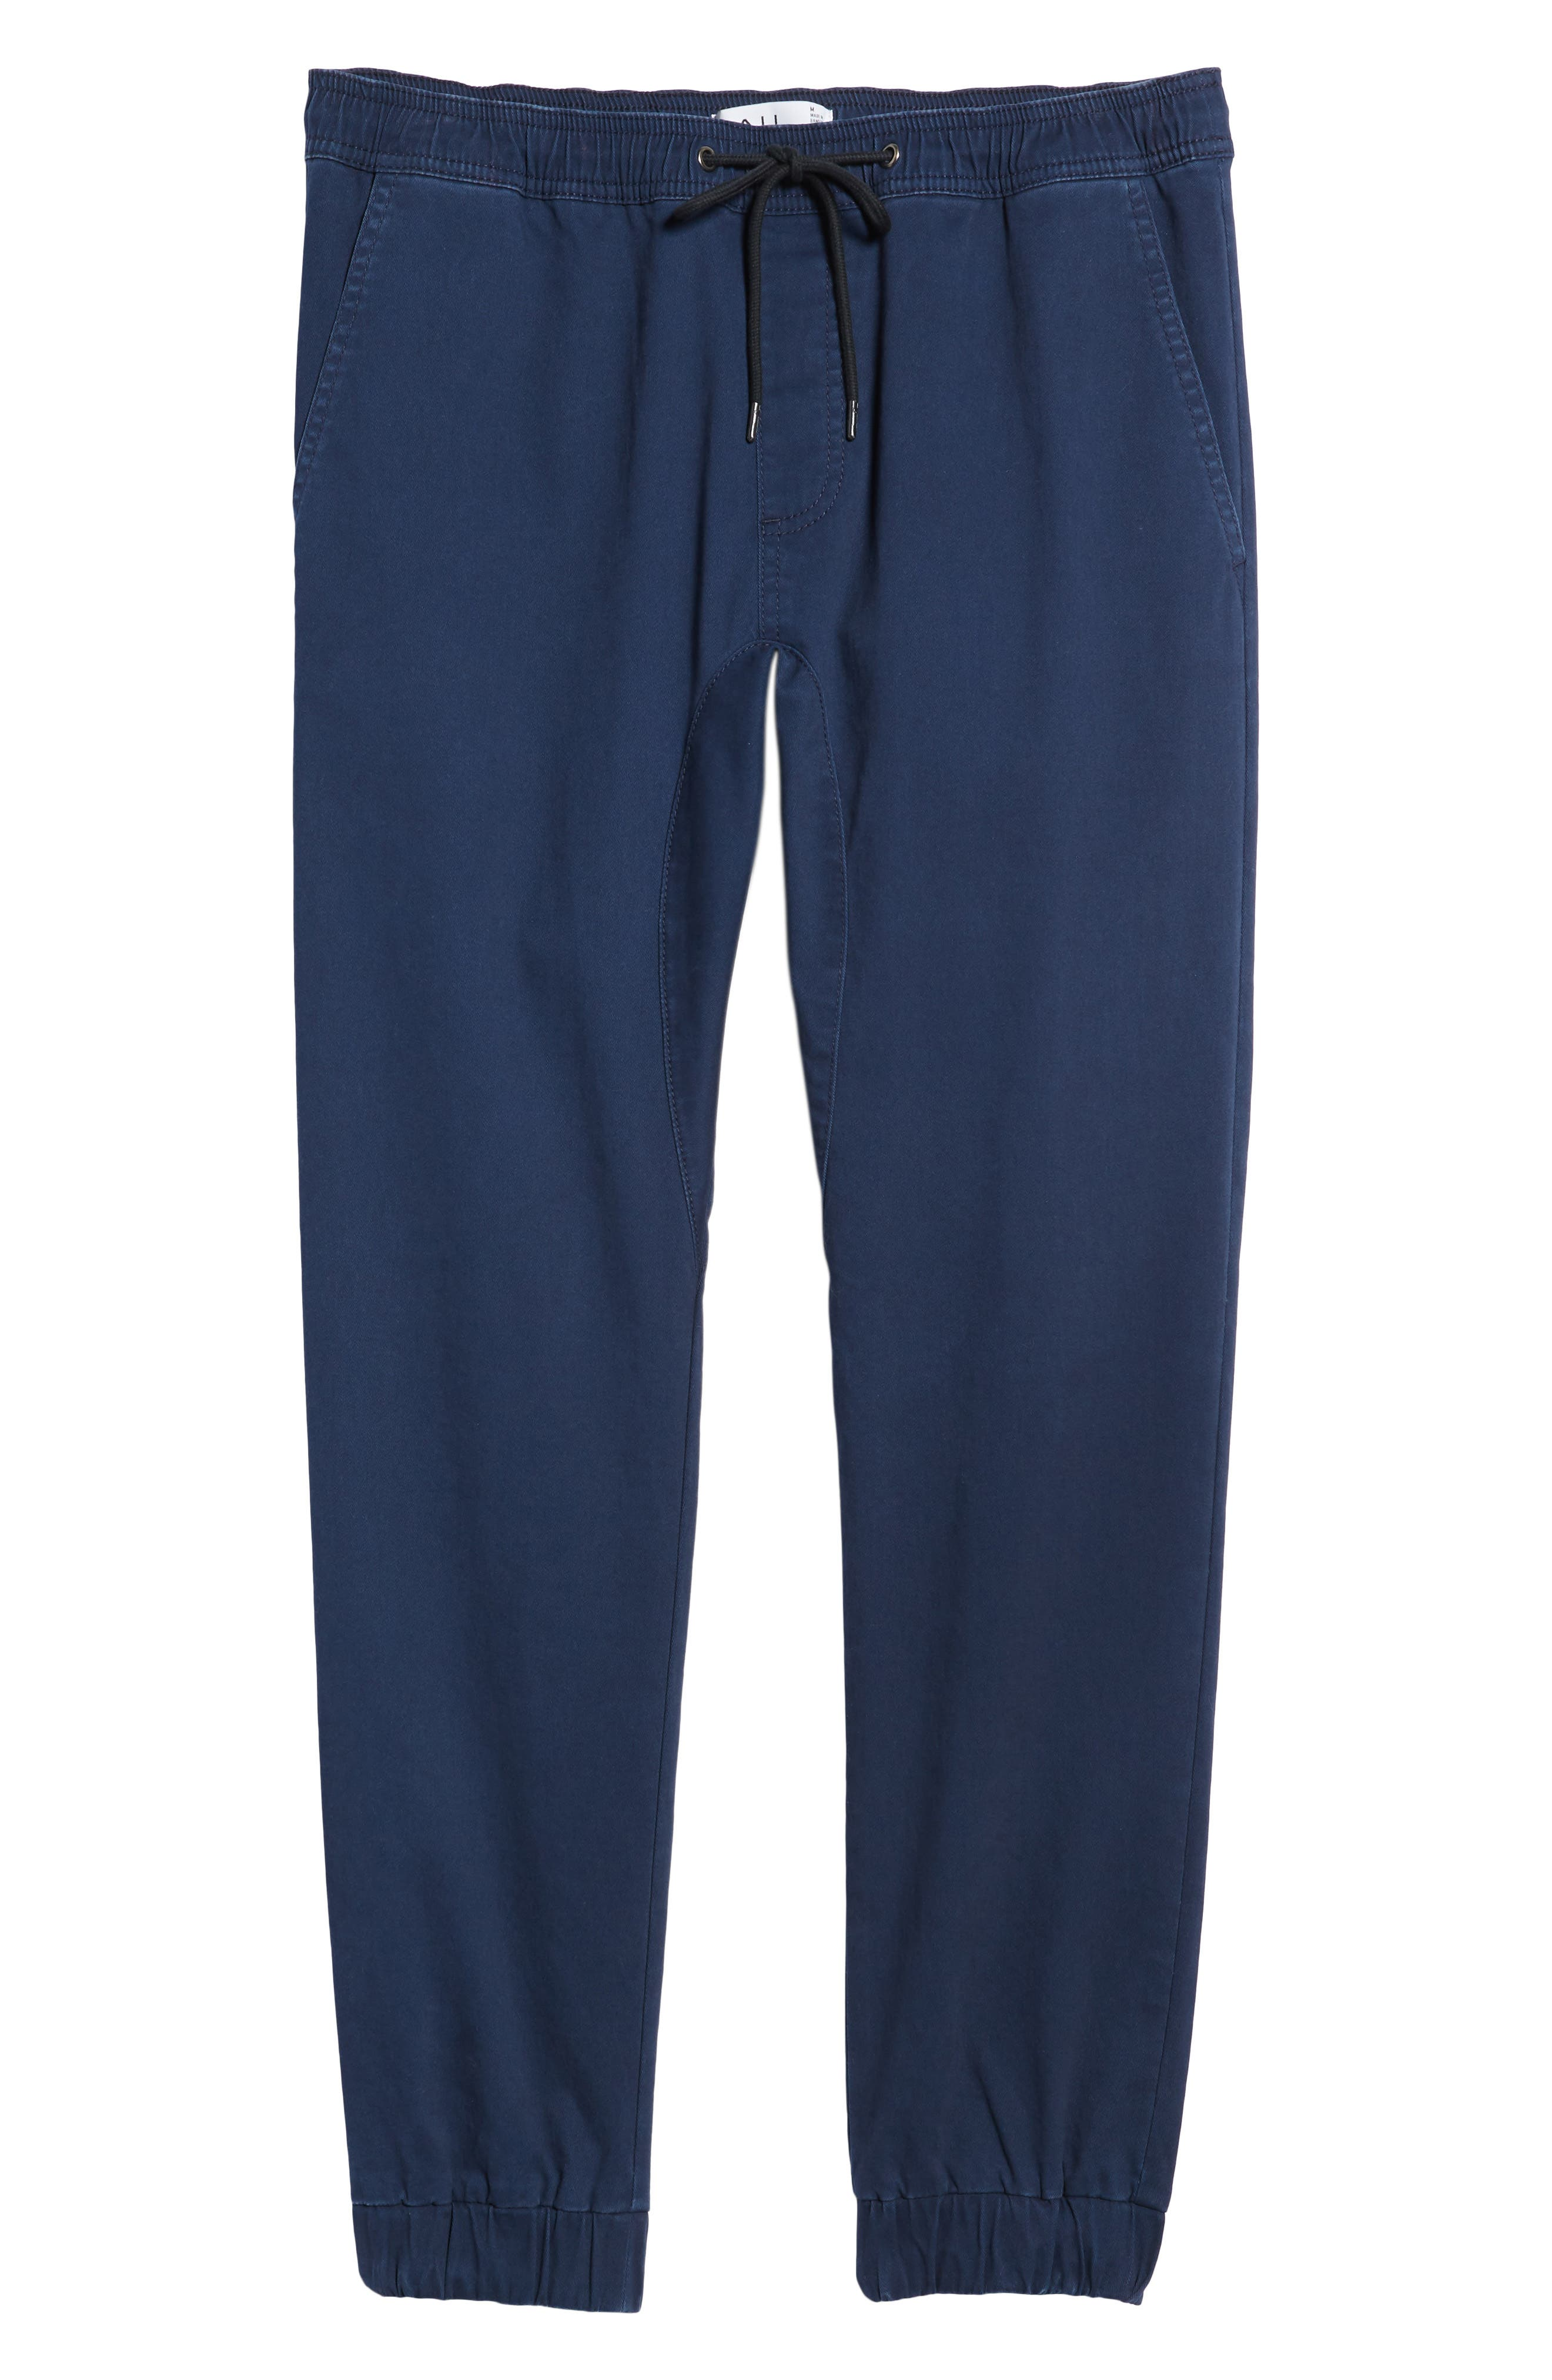 Jogger Pants,                             Alternate thumbnail 30, color,